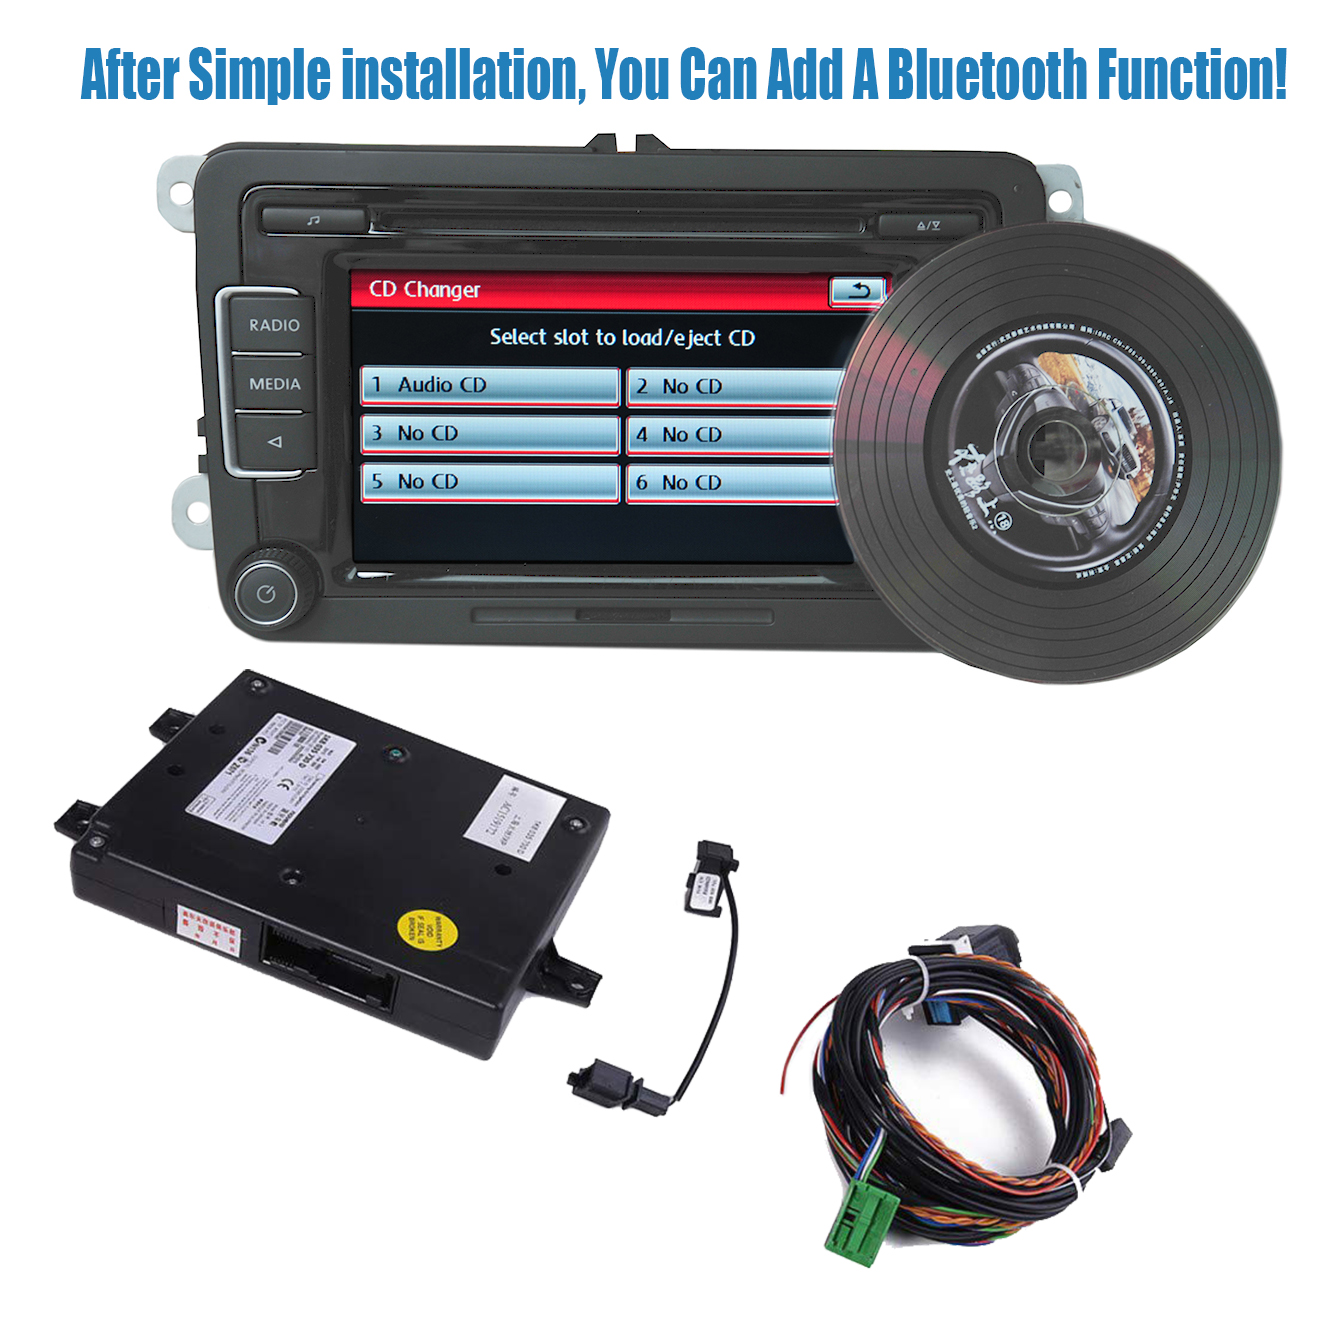 RCD510 Car Radio <font><b>USB</b></font> Ipod Bluetooth Module+Microphone+<font><b>Cable</b></font> line Car Kit For <font><b>VW</b></font> <font><b>Golf</b></font> Jetta Passat MK5 <font><b>6</b></font> 3AD035190A 56D035190 image